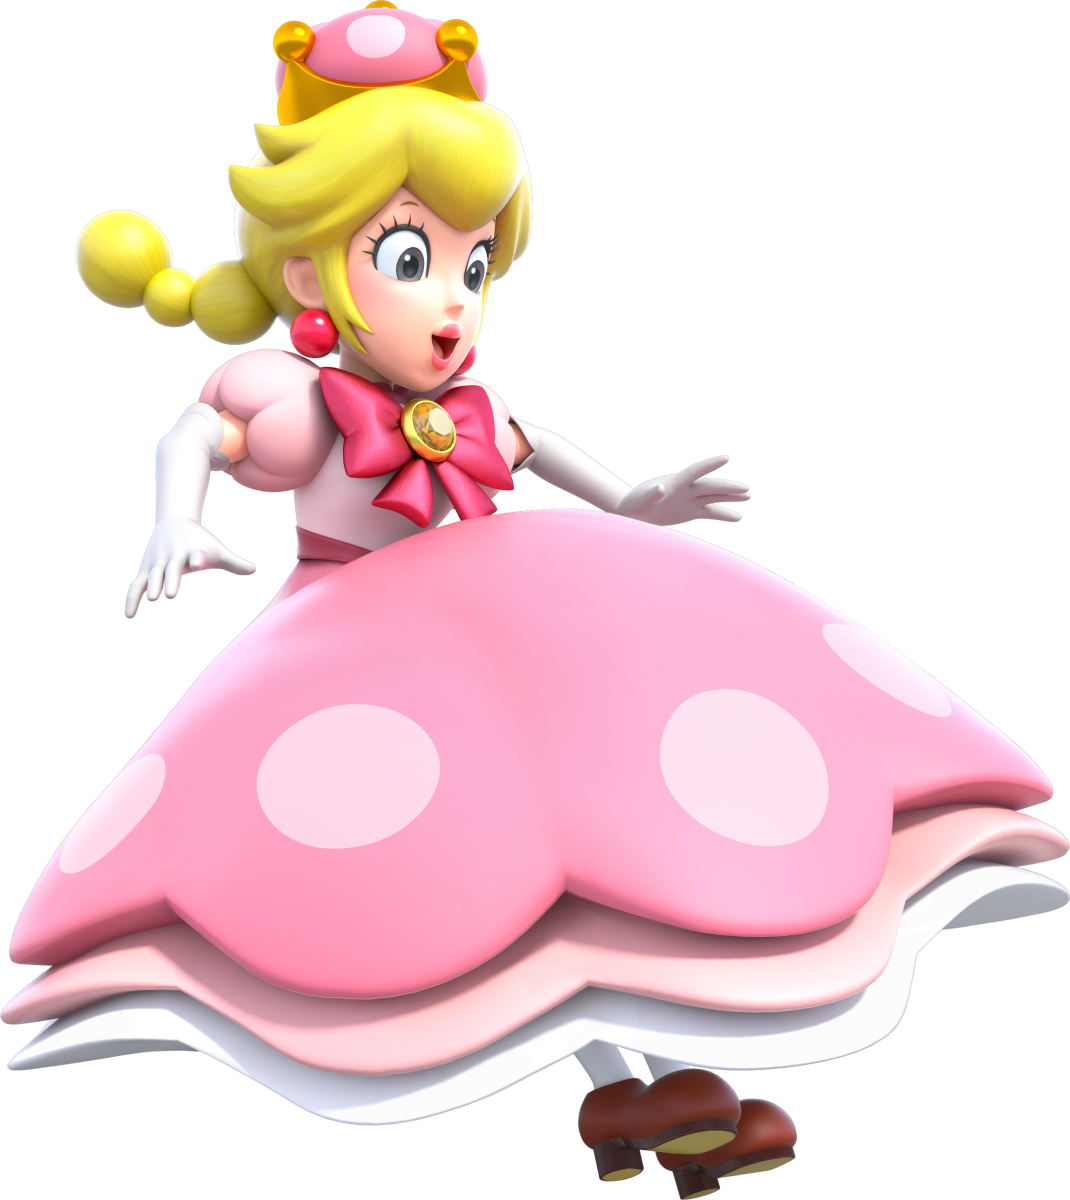 does-the-existence-of-peachette-disprove-the-mario-galaxy-reshuffle-theory-for-rosalina